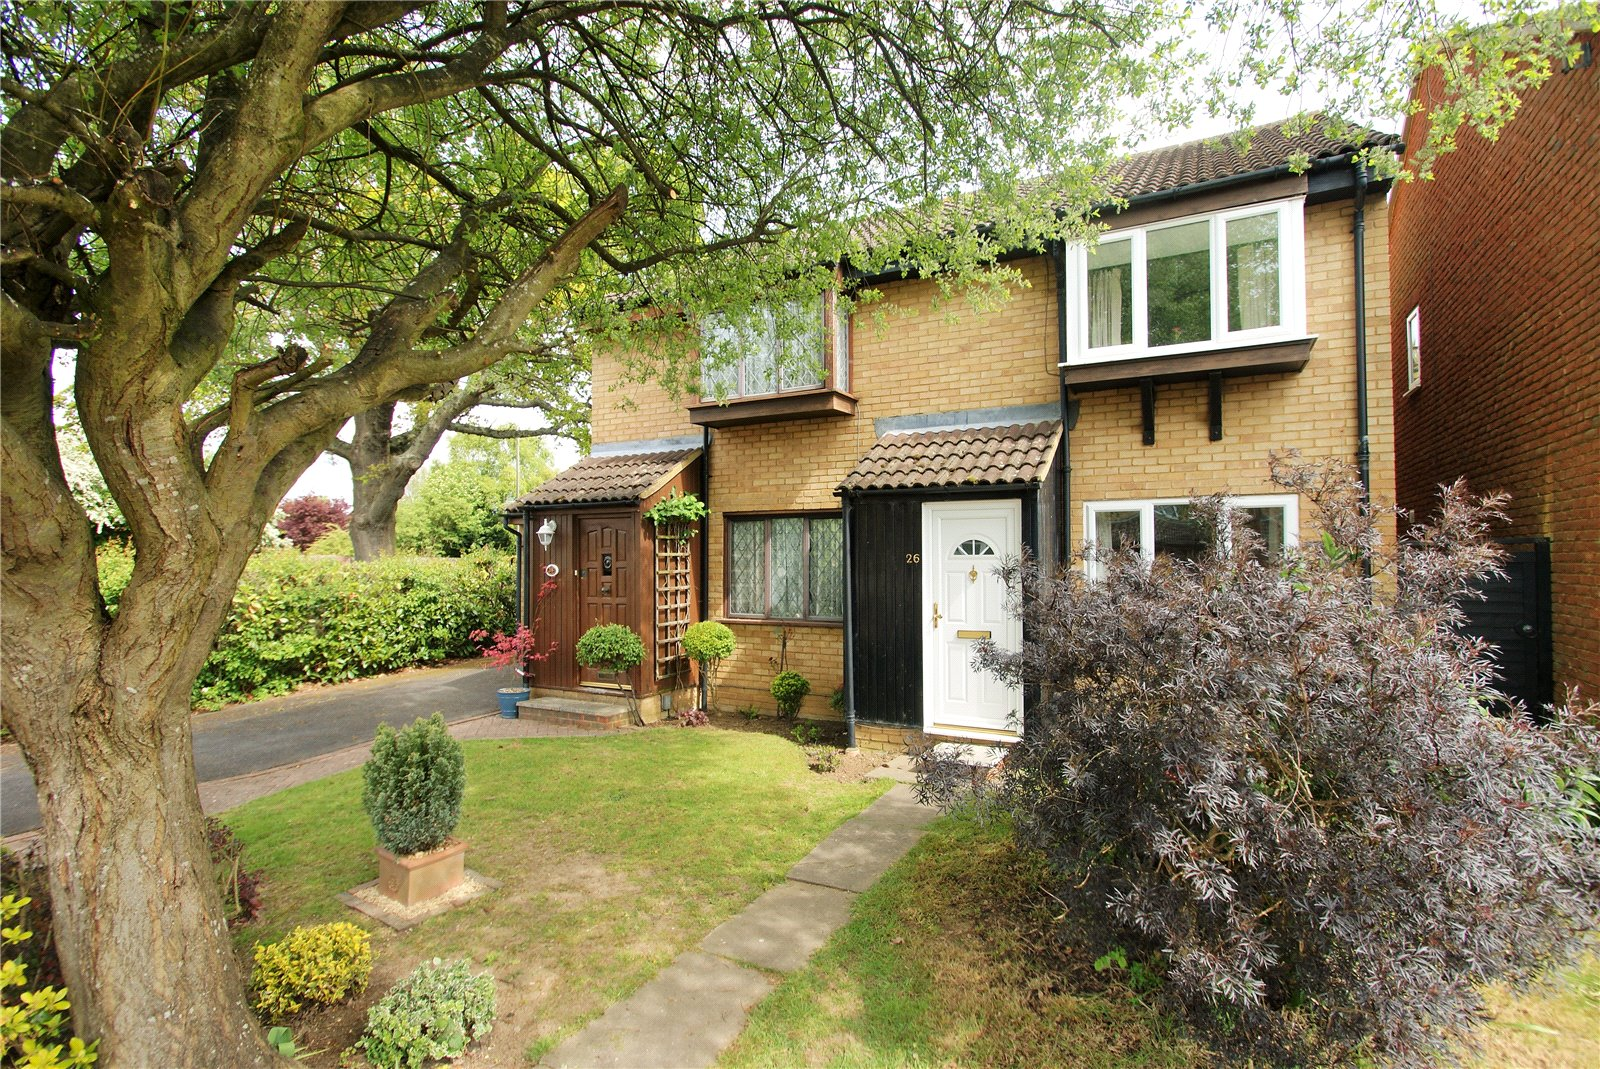 2 Bedrooms Semi Detached House for sale in Mercury Avenue, Wokingham, Berkshire, RG41